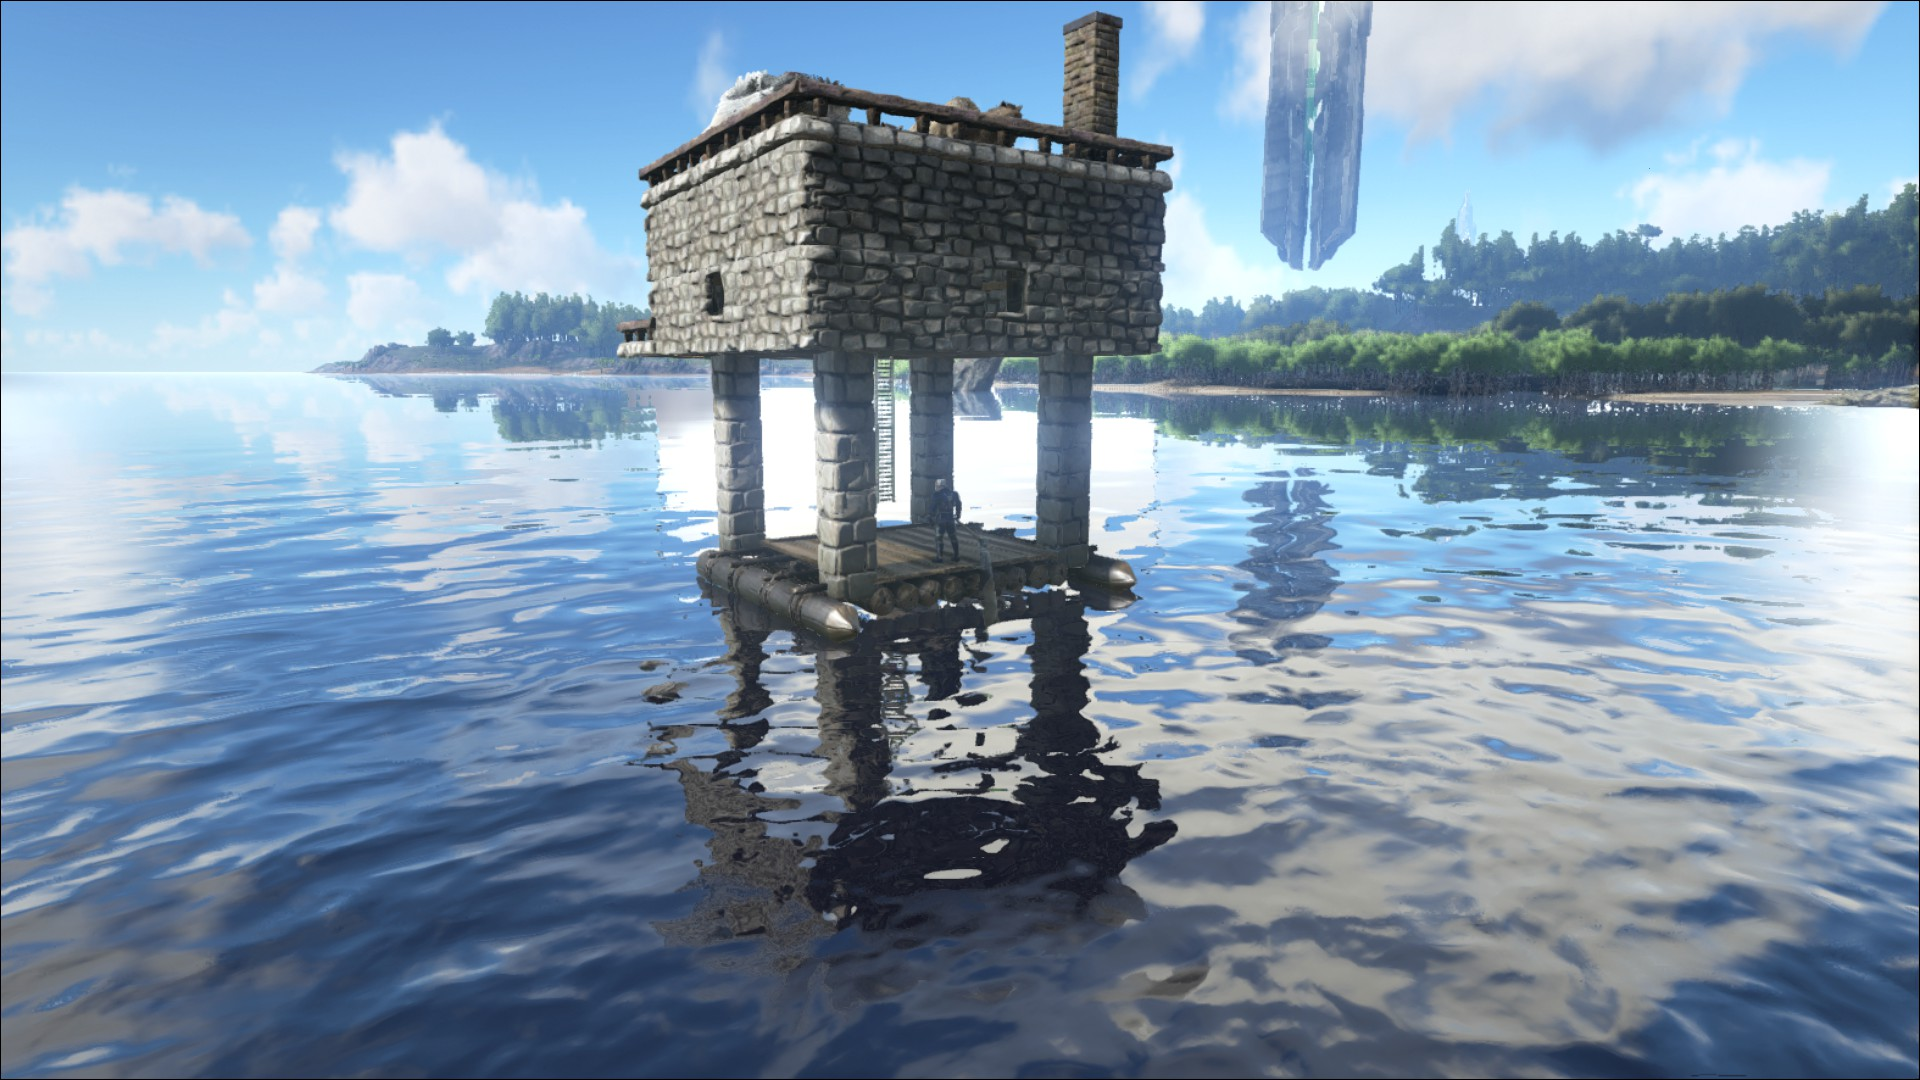 Building structures on rafts general discussion ark official 4412fe2ad36557af10220112da96b3adc43f4491 73924aeefb031caff5118963e65715440eed9610 malvernweather Gallery